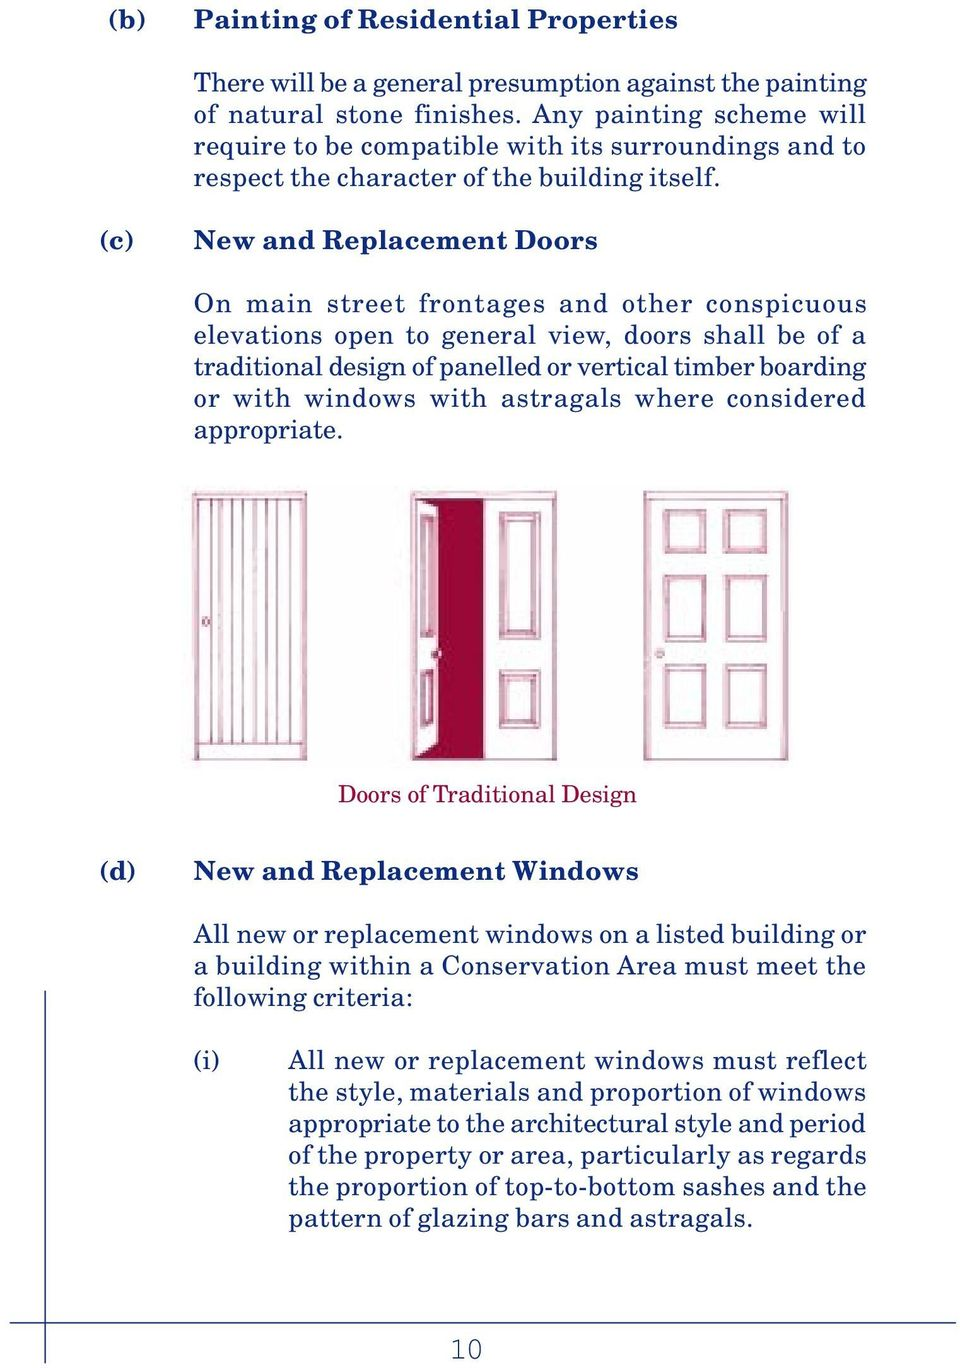 (c) New and Replacement Doors On main street frontages and other conspicuous elevations open to general view, doors shall be of a traditional design of panelled or vertical timber boarding or with